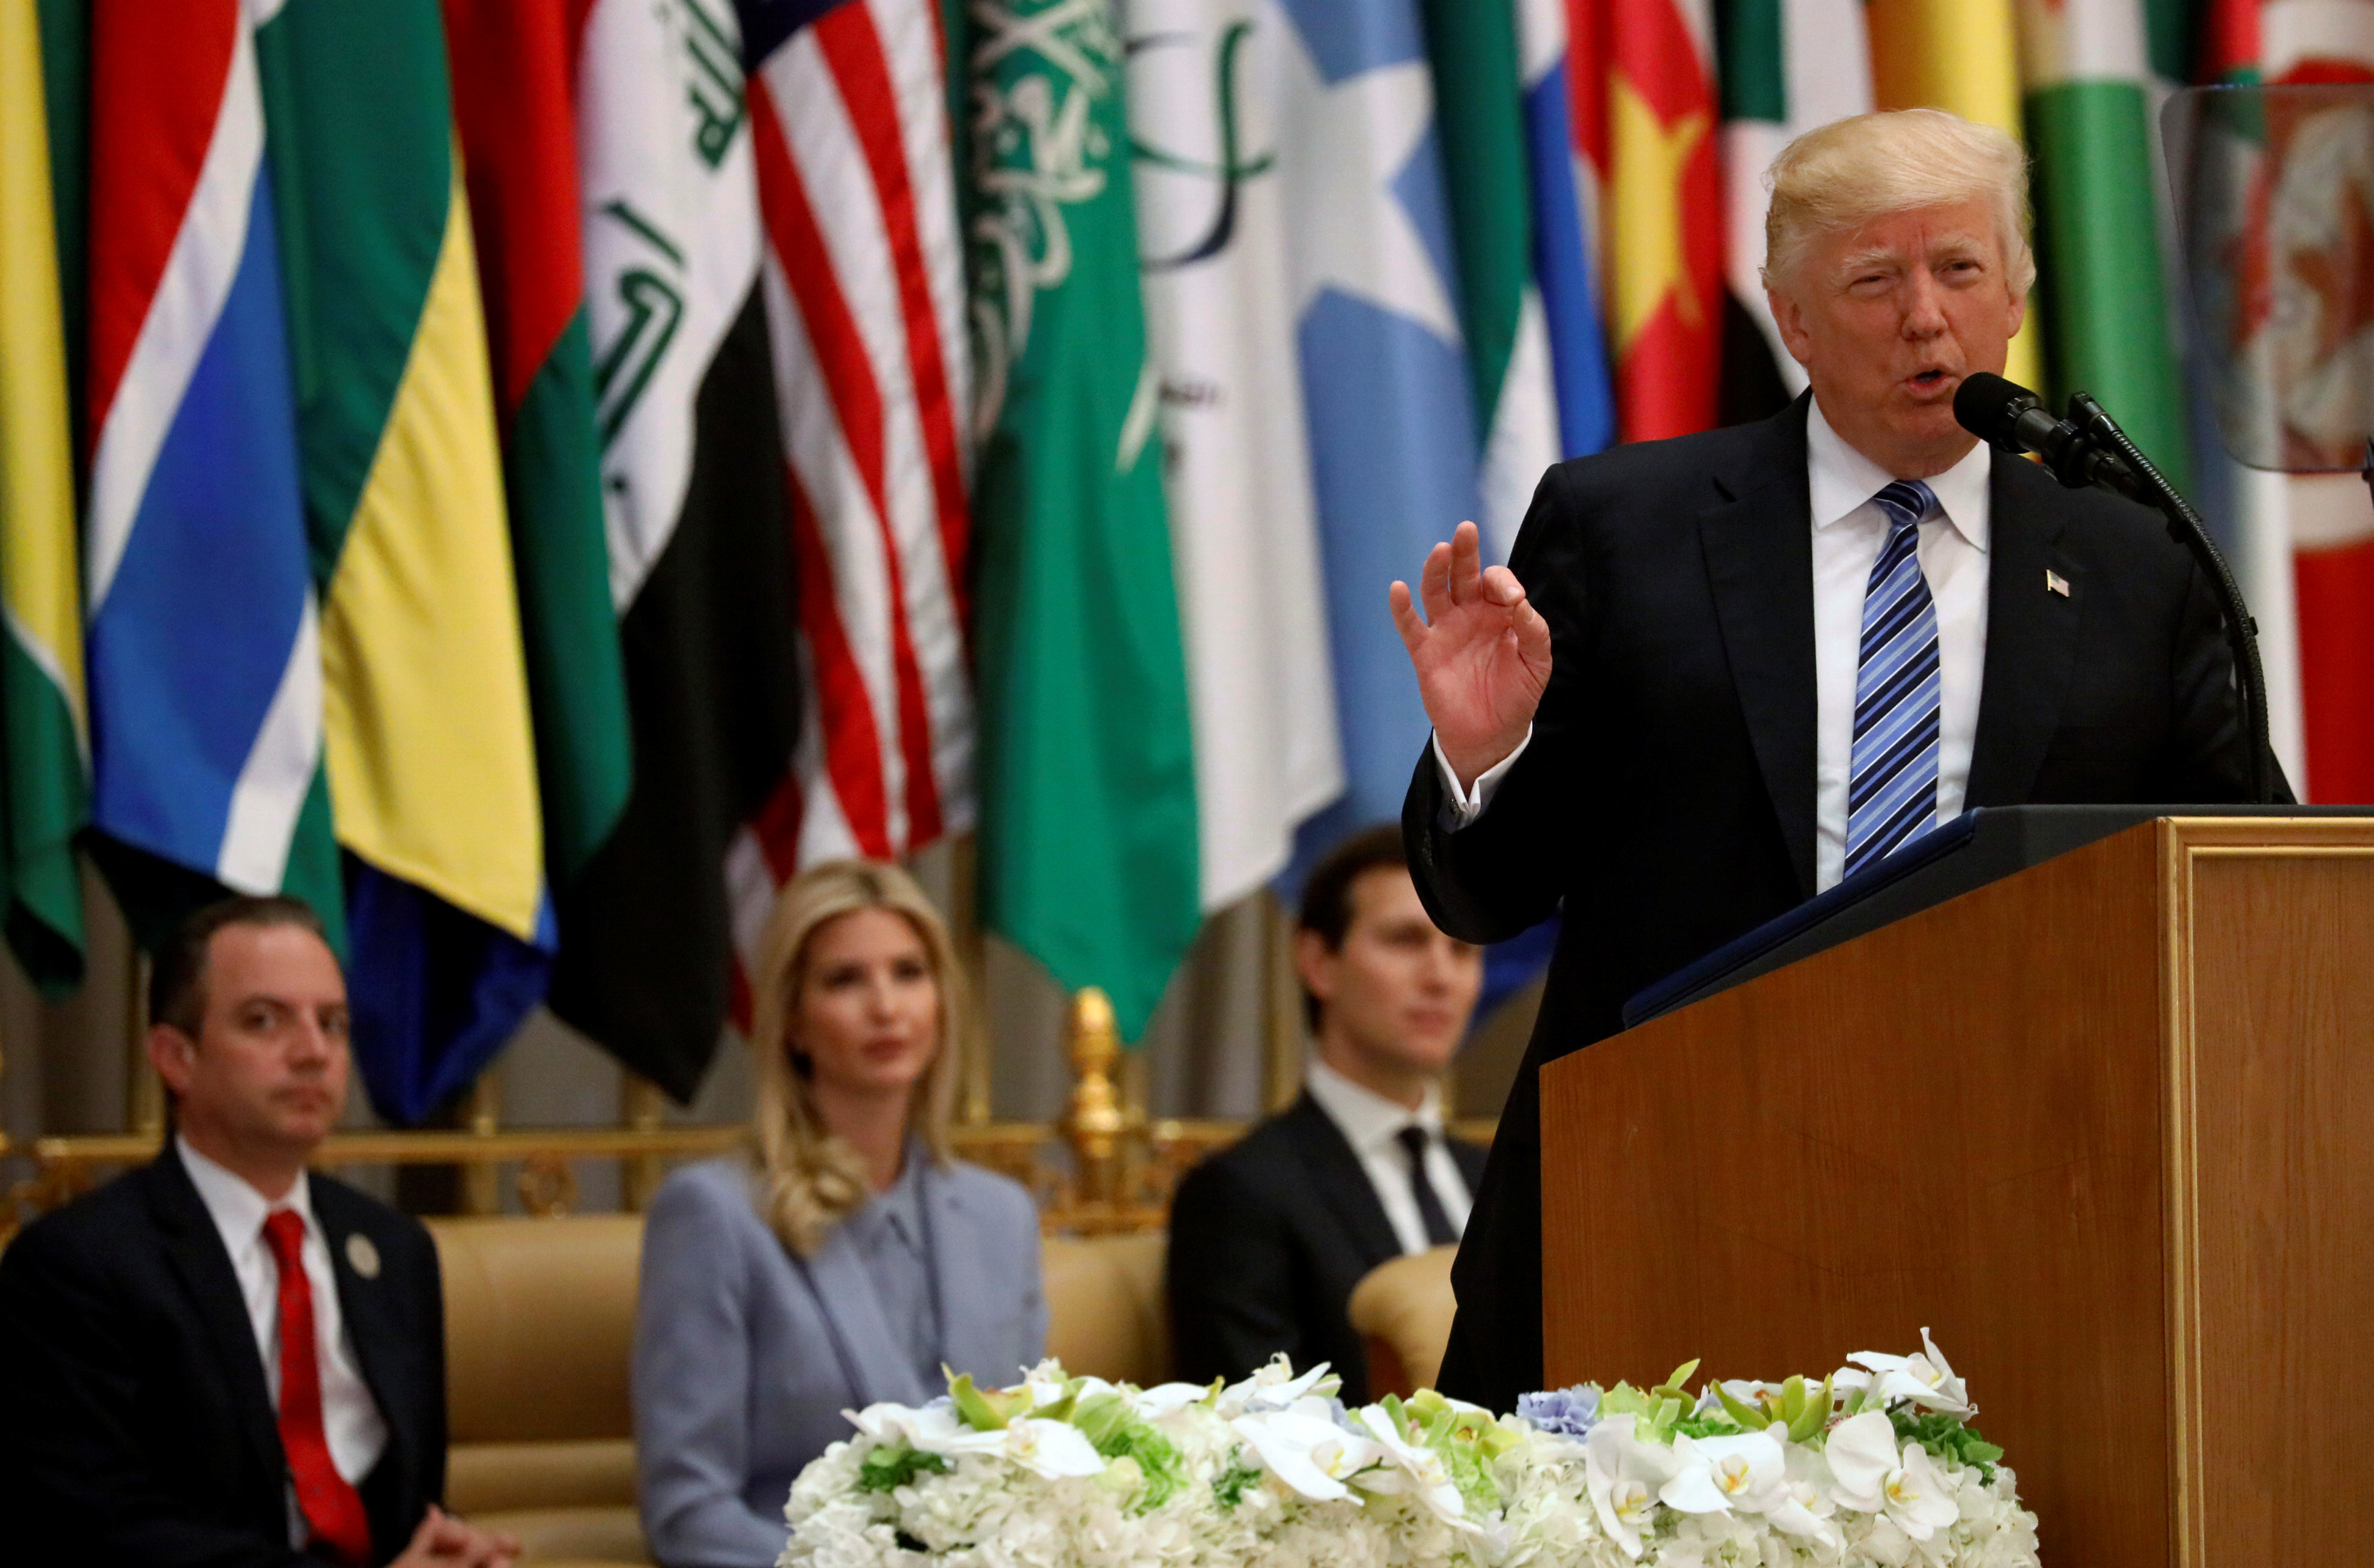 U.S. President Donald Trump, flanked by White House Chief of Staff Reince Priebus (L-R), Ivanka Trump and White House senior advisor Jared Kushner, delivers remarks to the Arab Islamic American Summit in Riyadh, Saudi Arabia May 21, 2017.  REUTERS/Jonathan Ernst - RTX36UJX